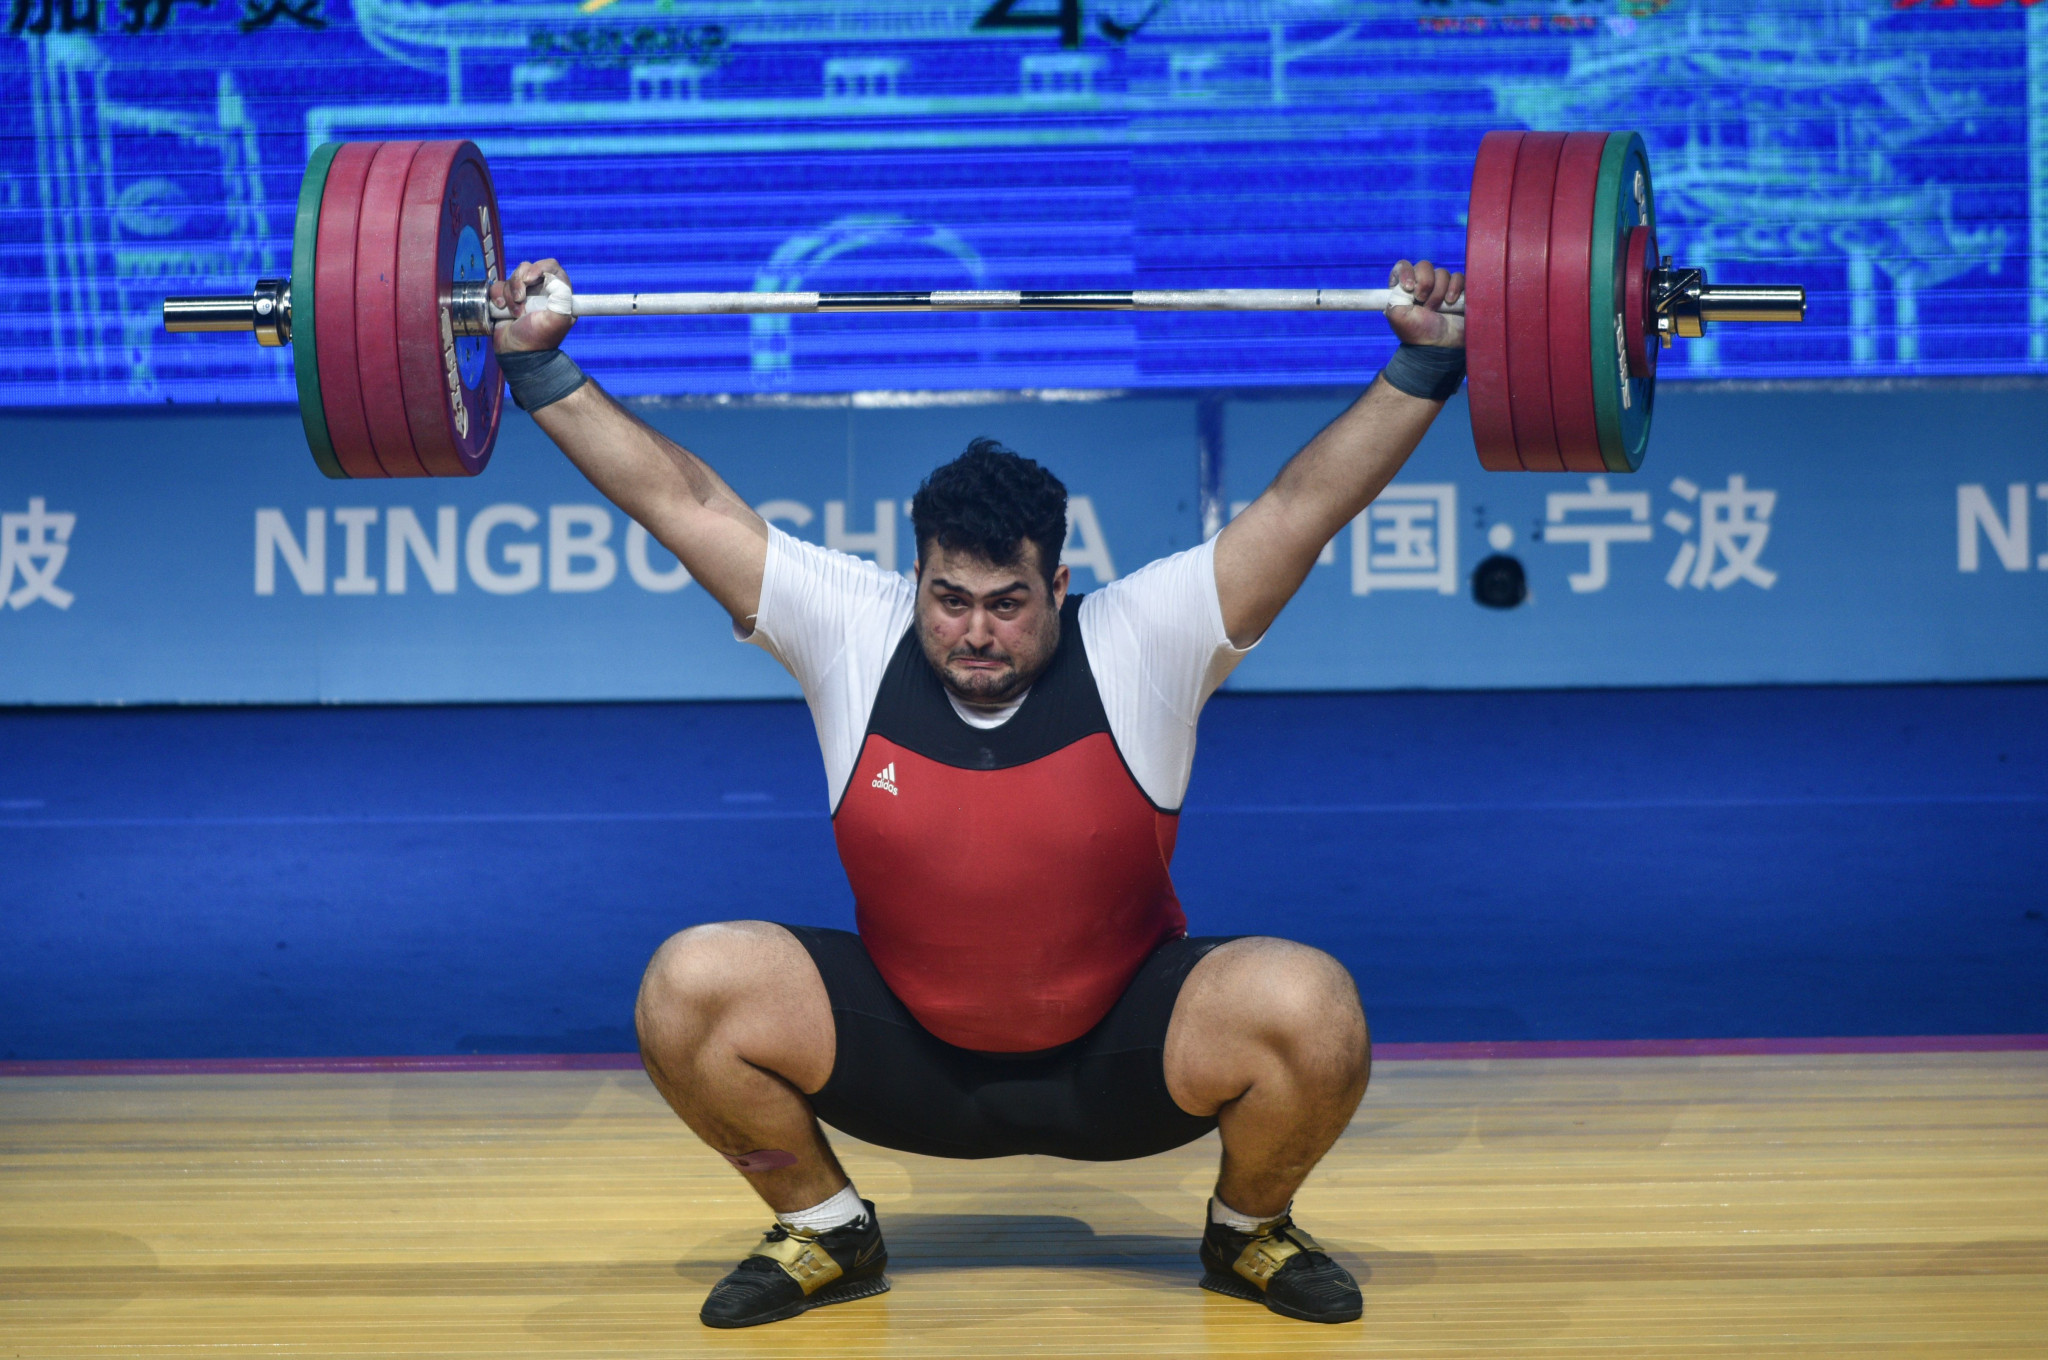 Kuwait seeking to host 2021 Asian Weightlifting Championships